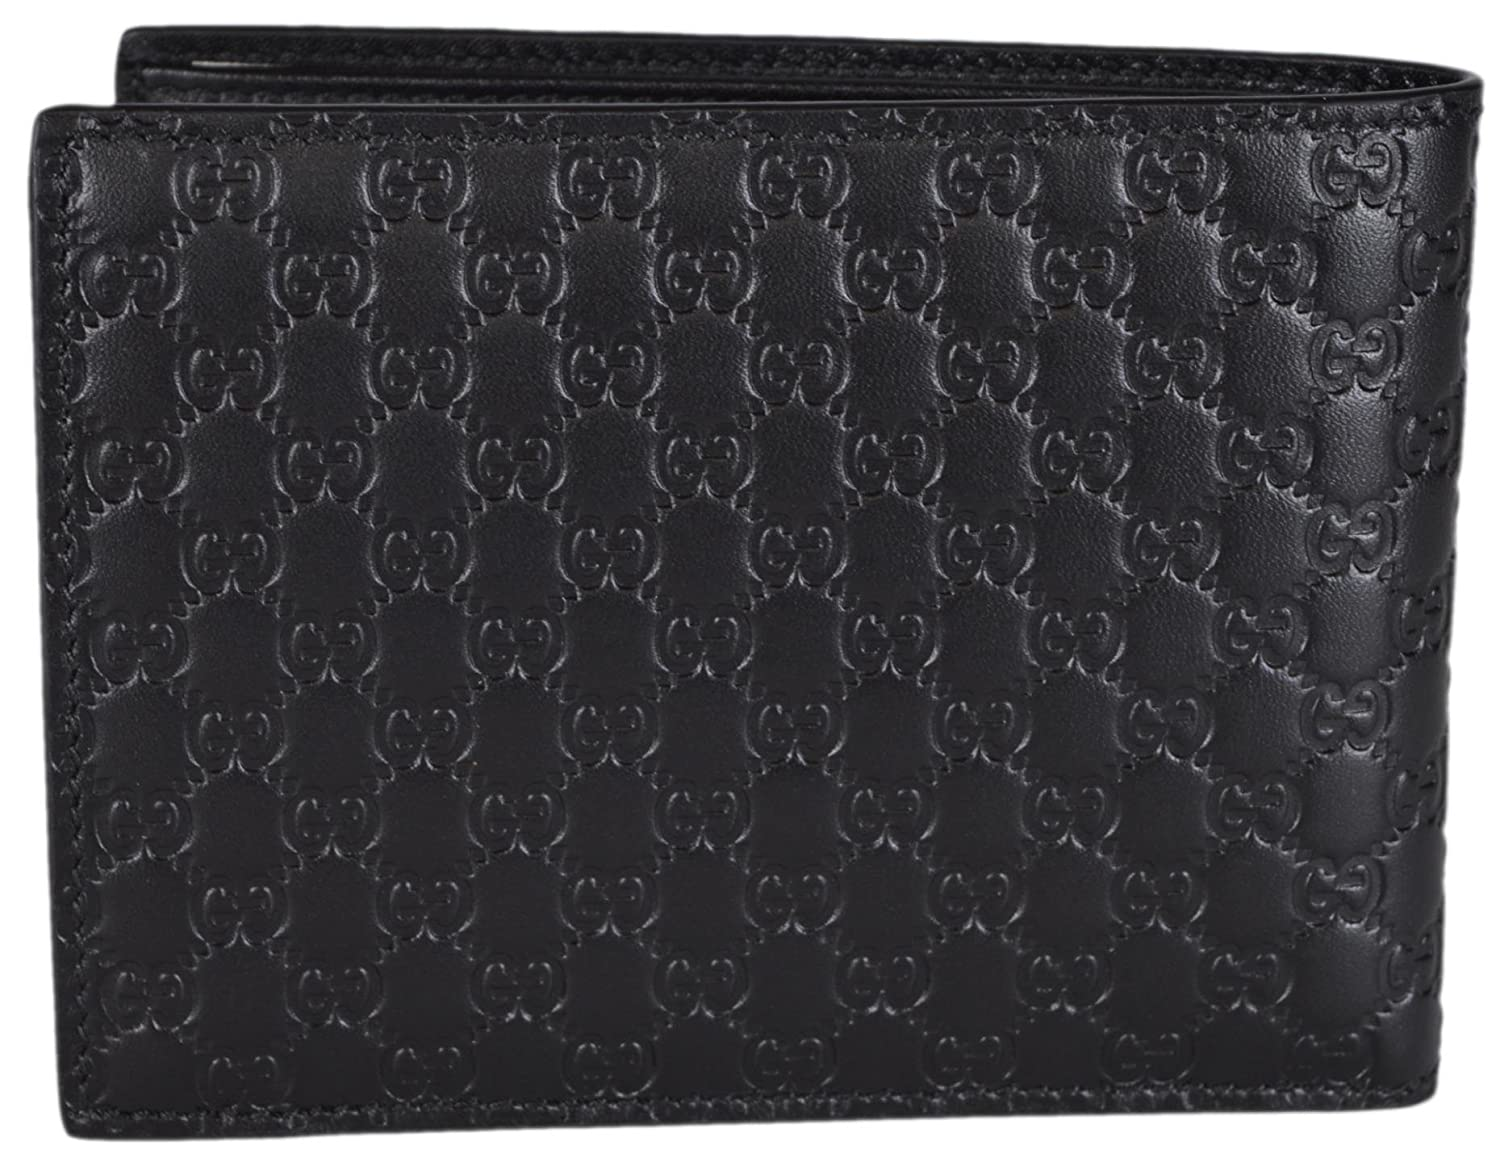 cdf01881f6b8f1 Gucci Men's Leather Micro GG Guccissima Trifold Wallet 217044 (Black):  Amazon.ca: Clothing & Accessories